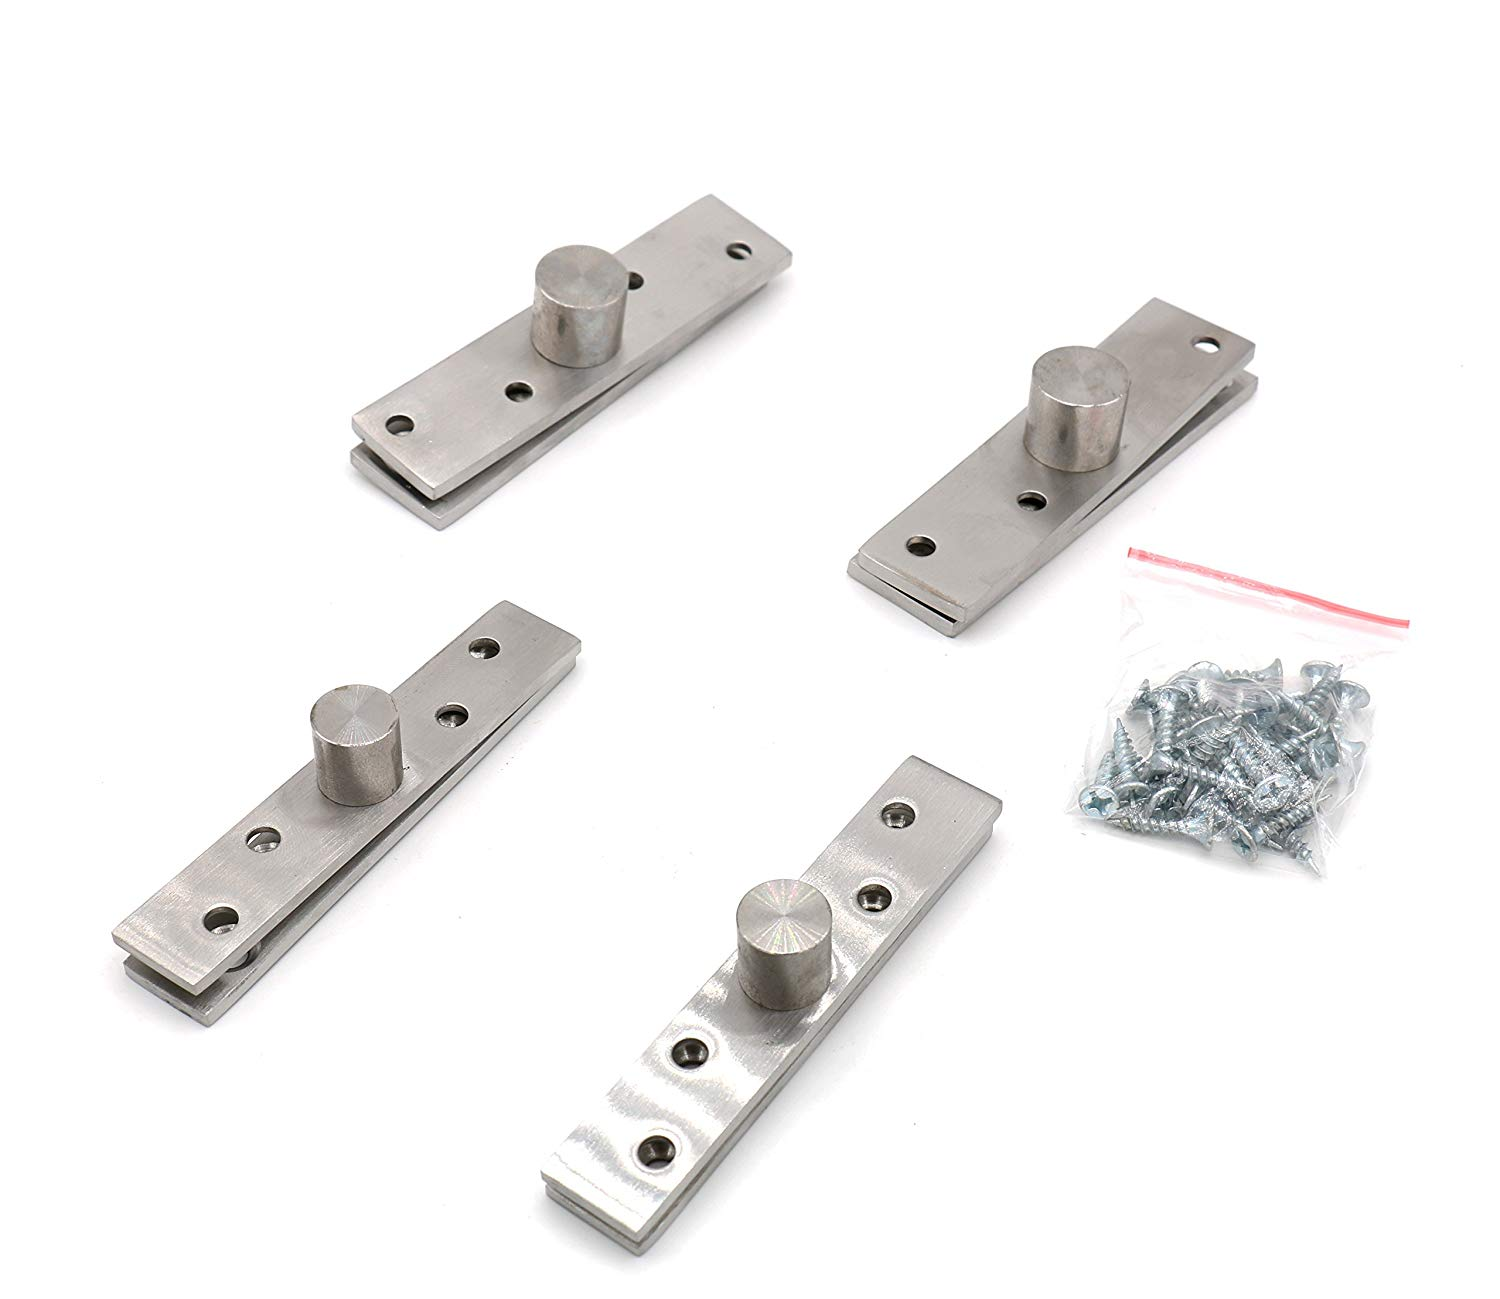 """Castuvy 360 Degree Stainless Steel Door Fittings, Floor Pivot Door Pivot Hinge, Stainless Steel Brushed Surface Hardware,4 PCS,3.9""""100mm/2.9""""(L) x 24mm/0.95""""(W),95mm/3.7""""(L) x 19mm,2 Size kit。"""